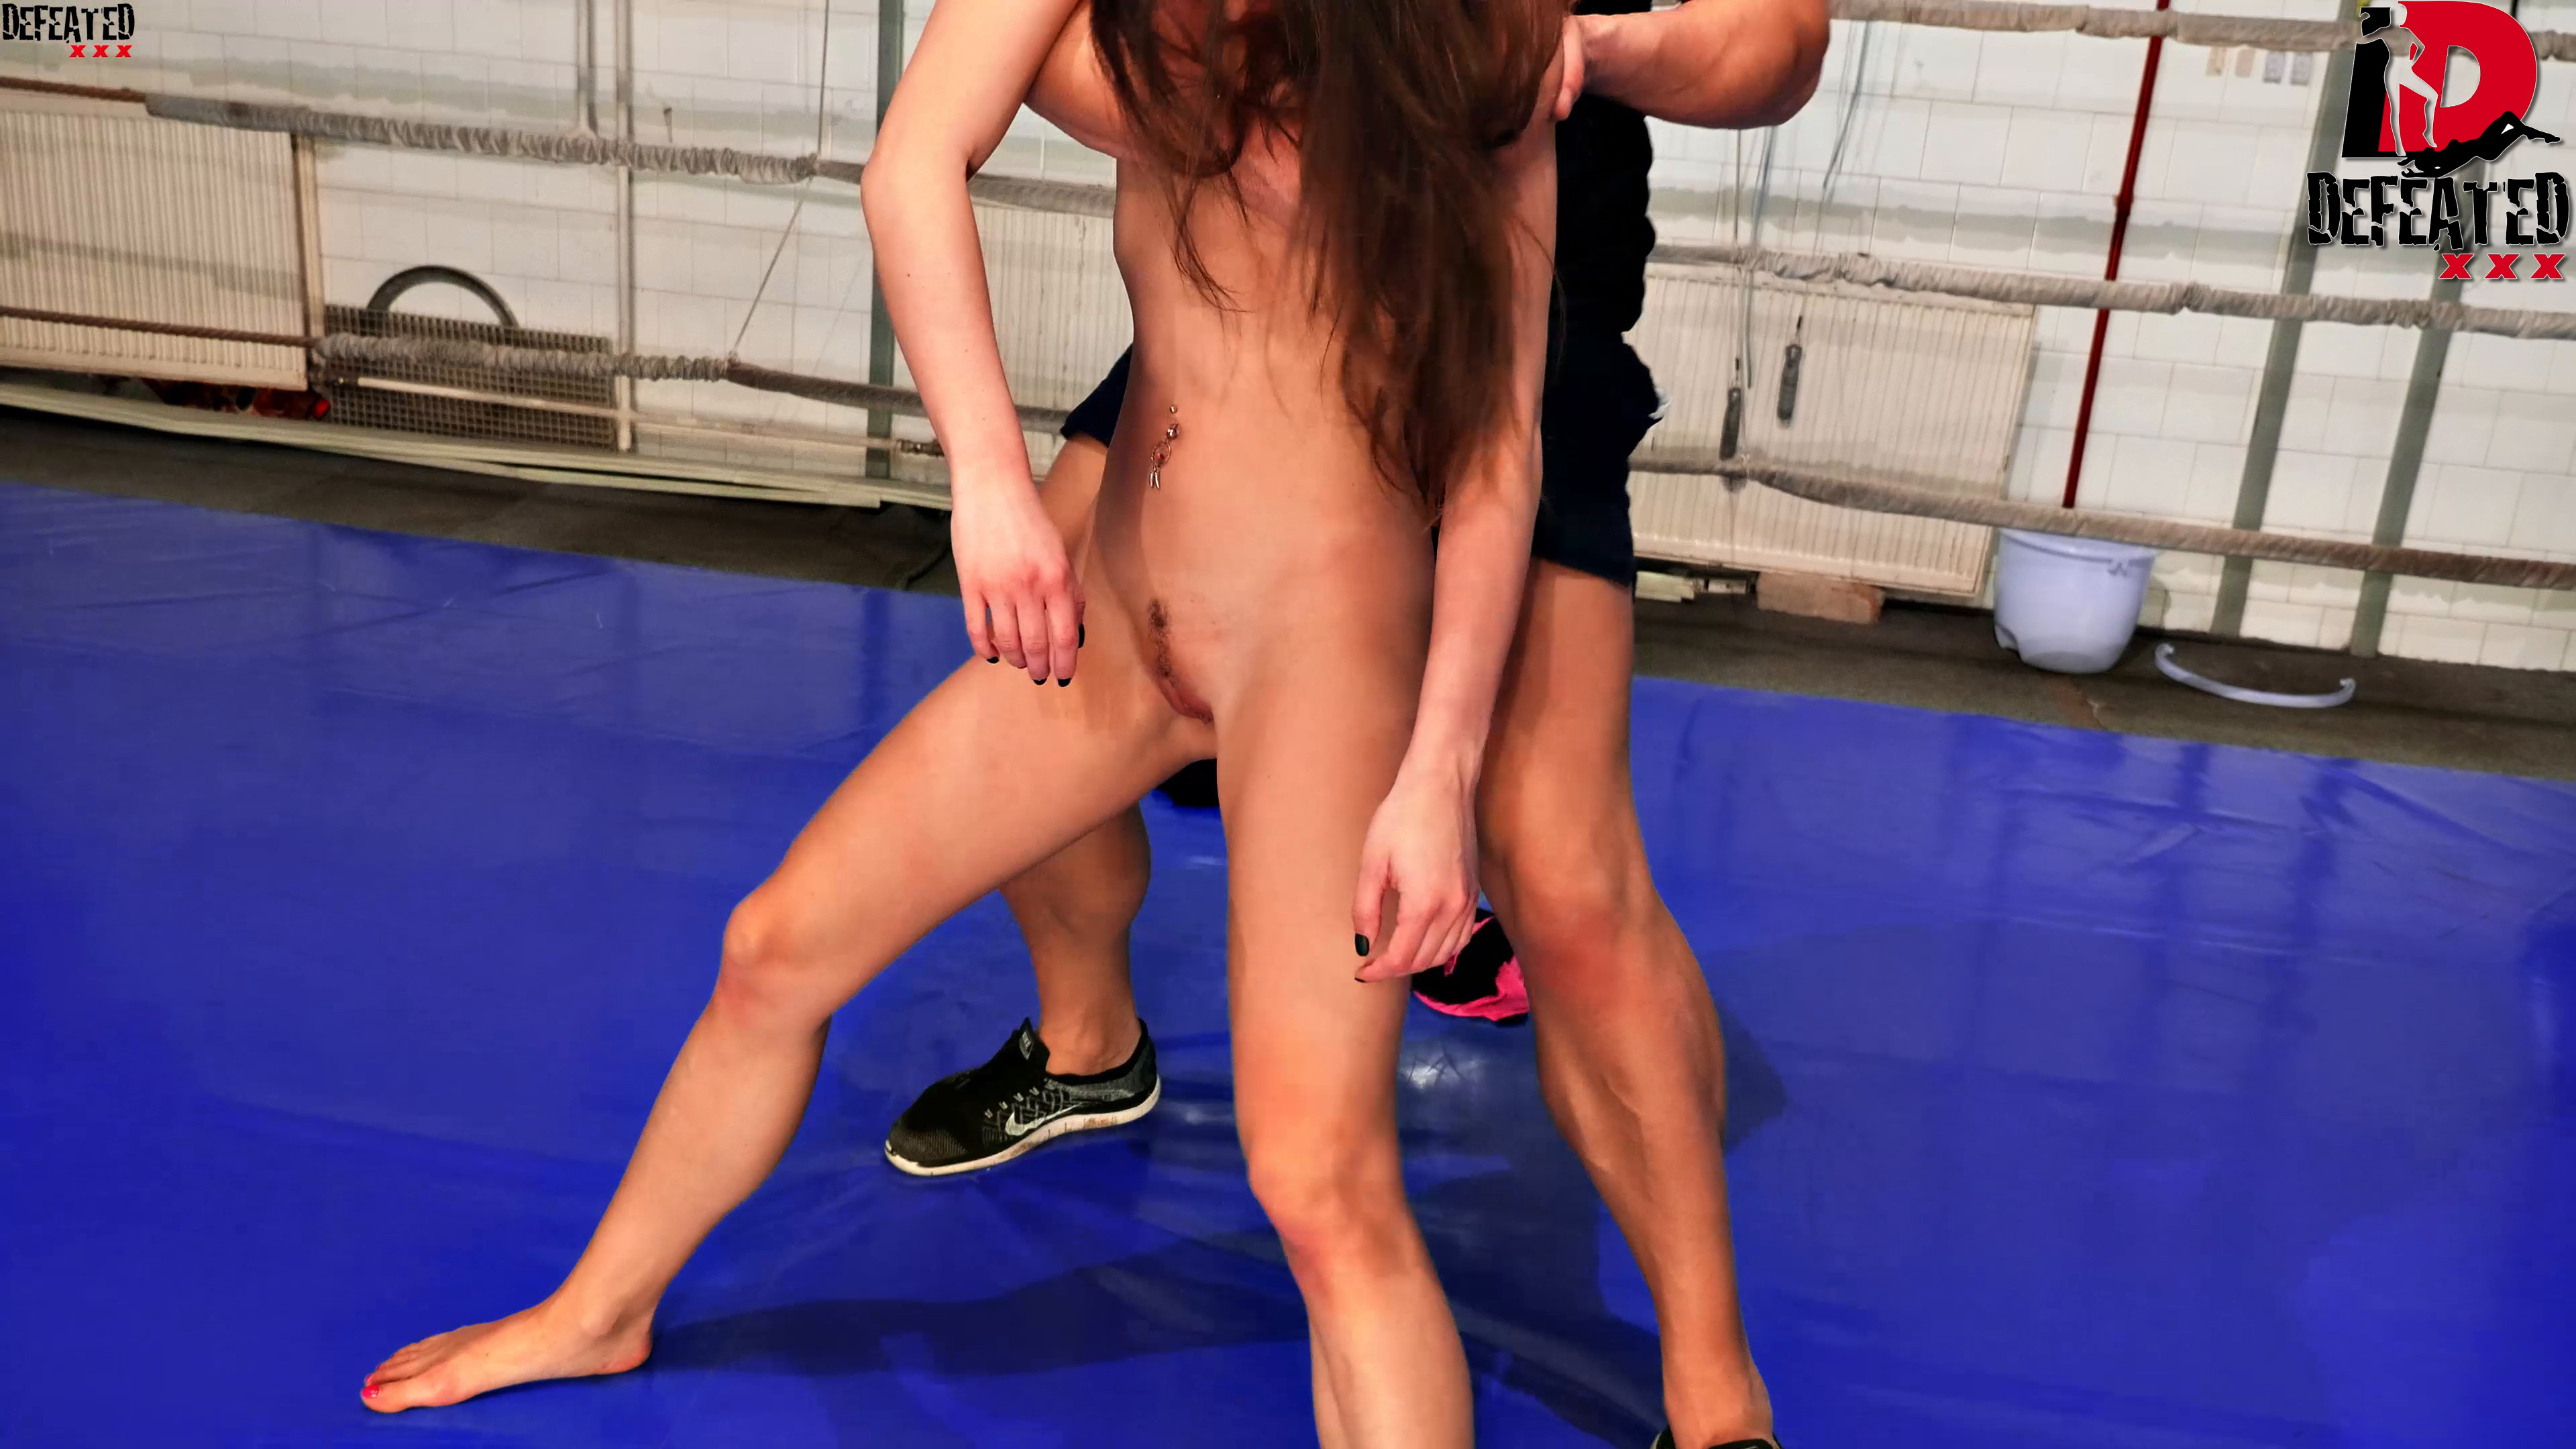 DEFEATED-MXD66---Amirah-Antonio-(53)